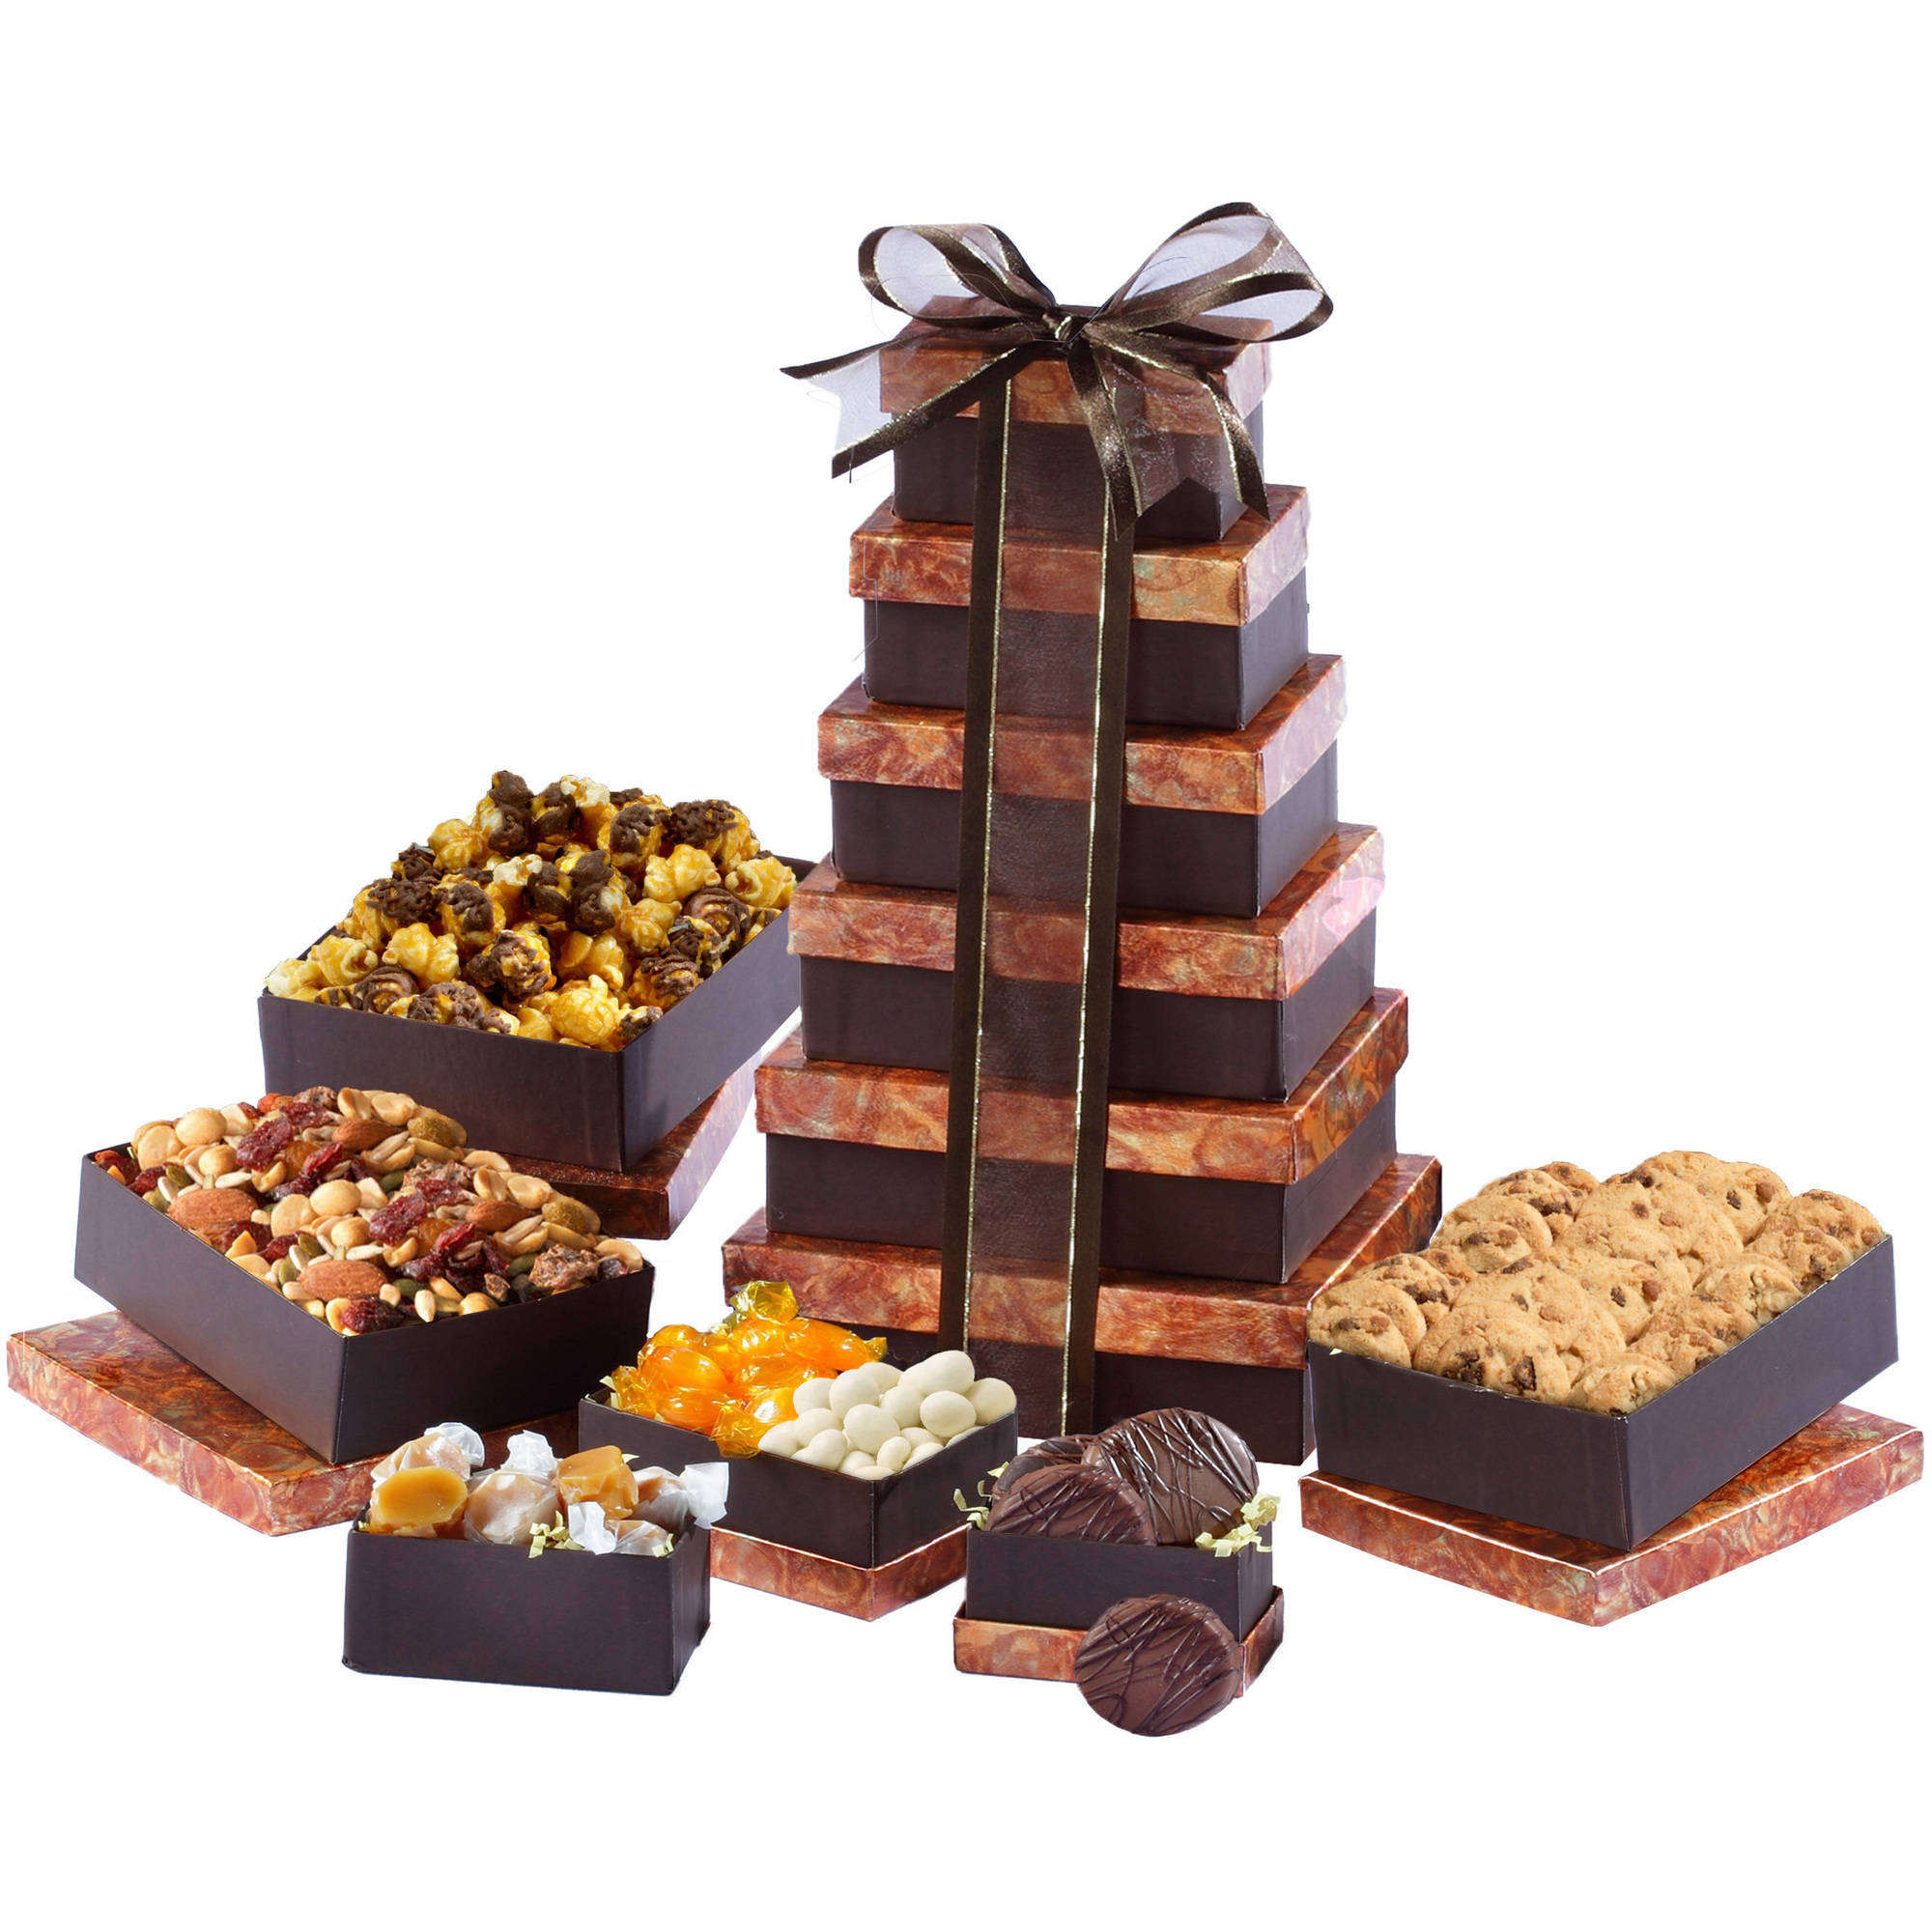 Broadway Basketeers Lasting Impressions Gourmet Delights Gift Tower, 8 pc